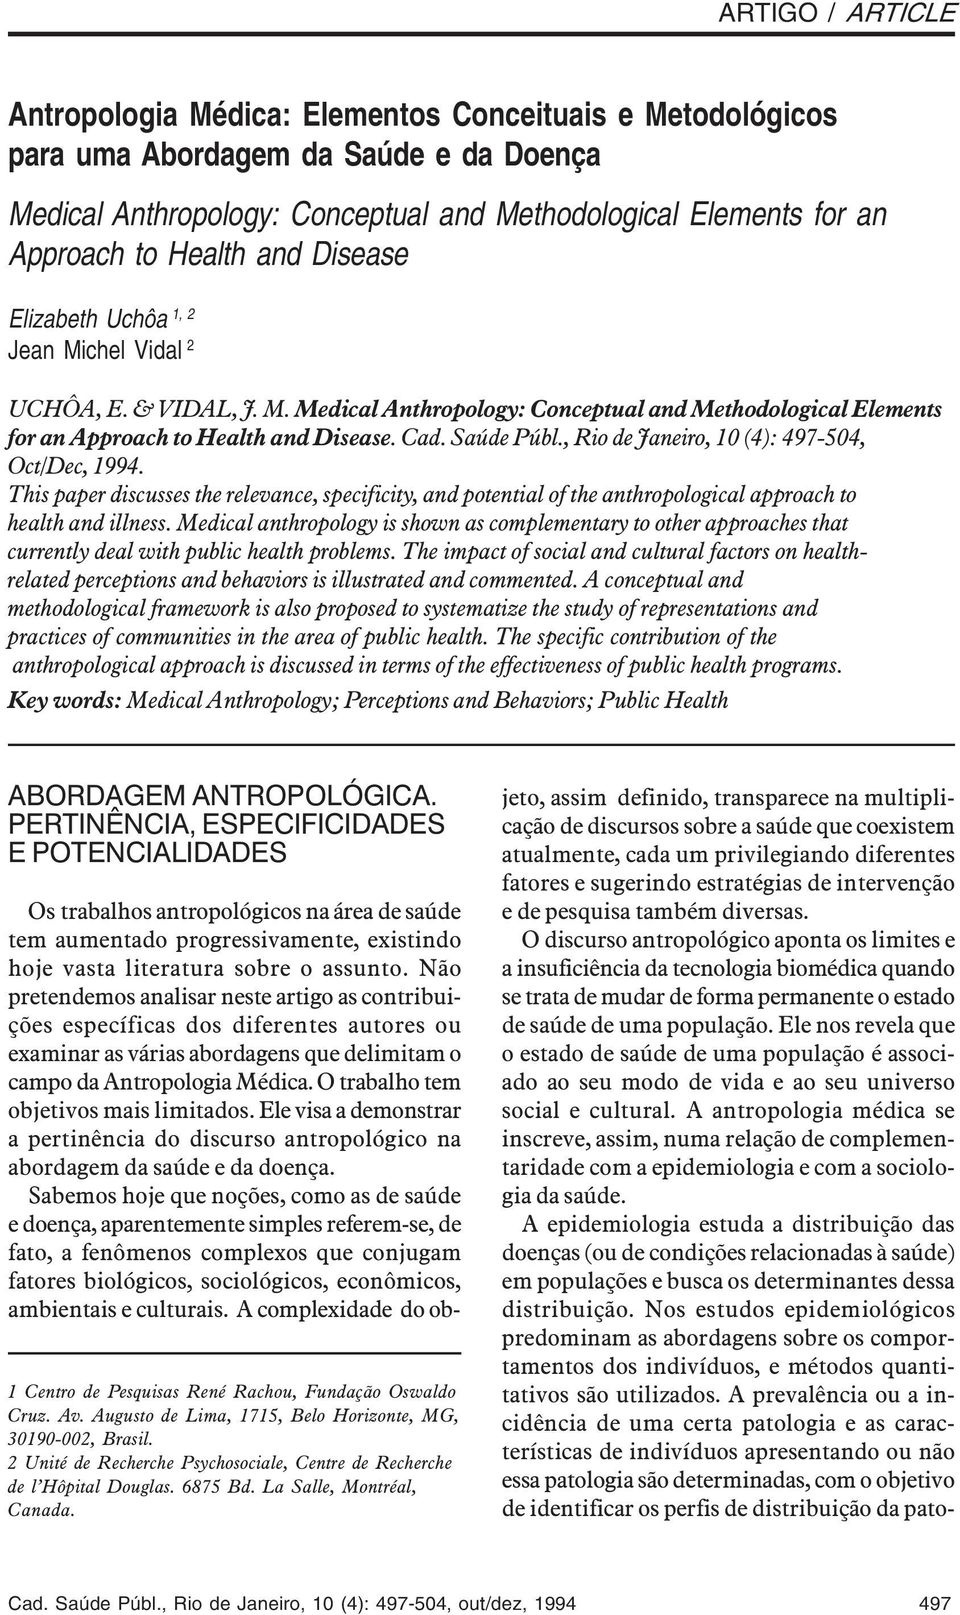 Saúde Públ., Rio de Janeiro, 10 (4): 497-504, Oct/Dec, 1994. This paper discusses the relevance, specificity, and potential of the anthropological approach to health and illness.